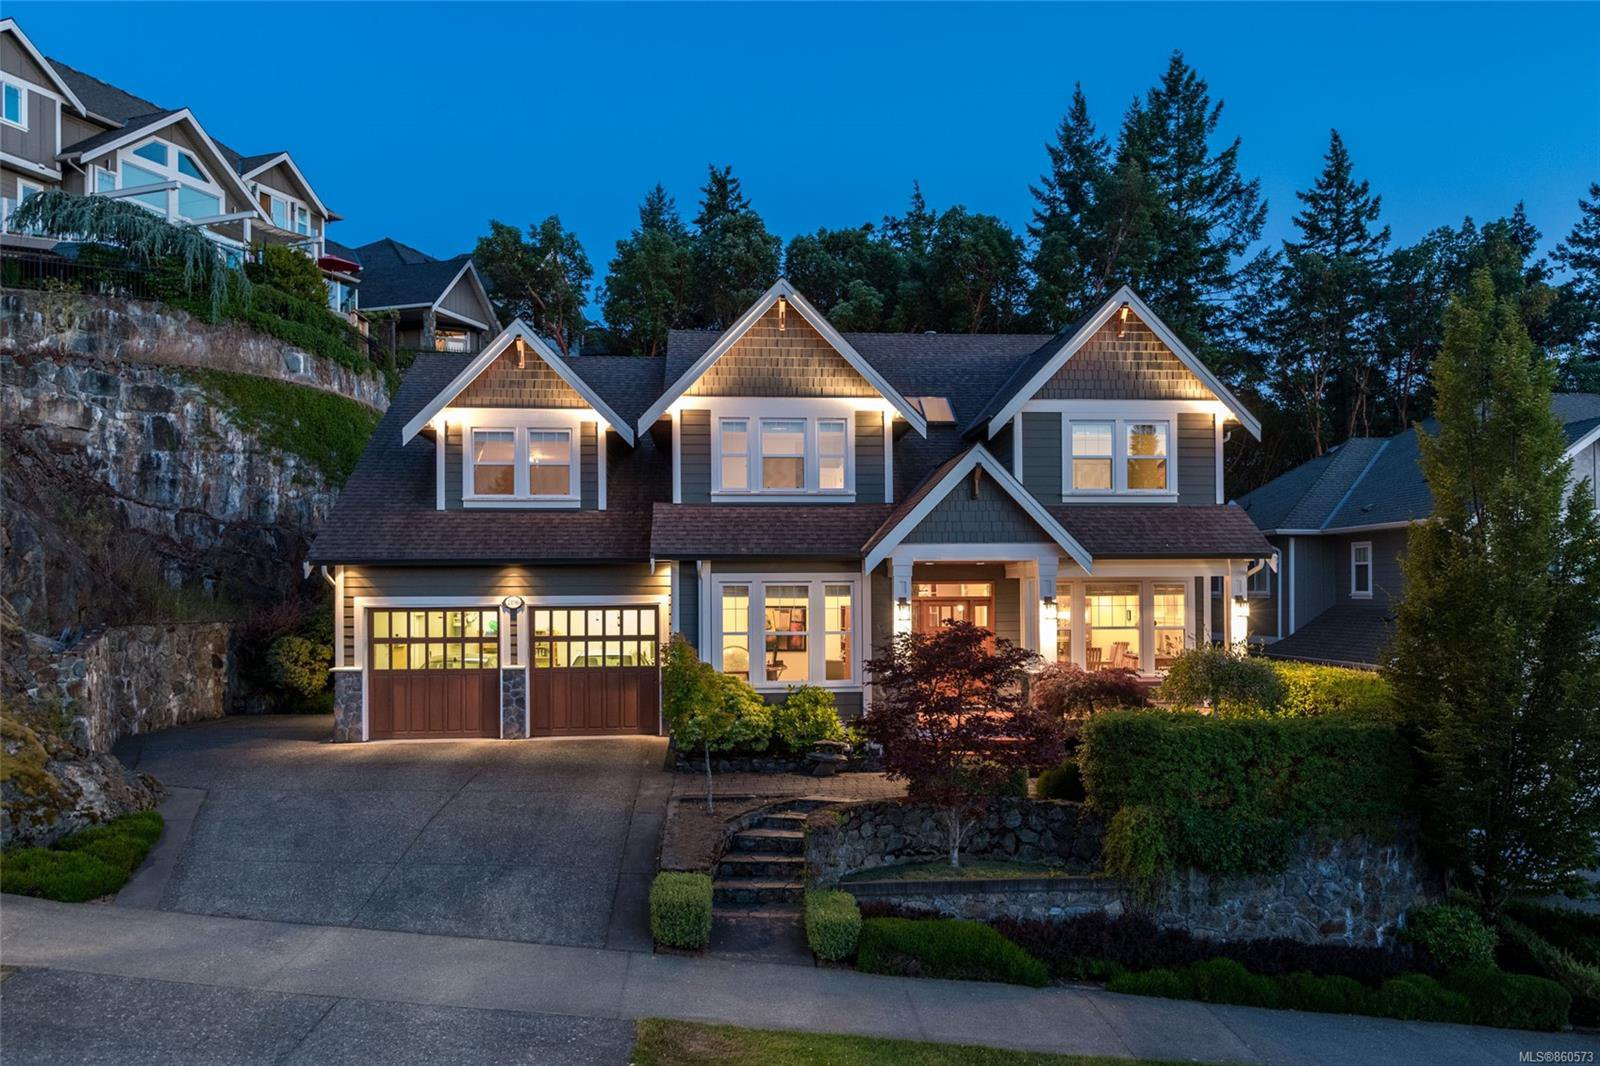 Main Photo: 2196 Nicklaus Dr in : La Bear Mountain House for sale (Langford)  : MLS®# 860573